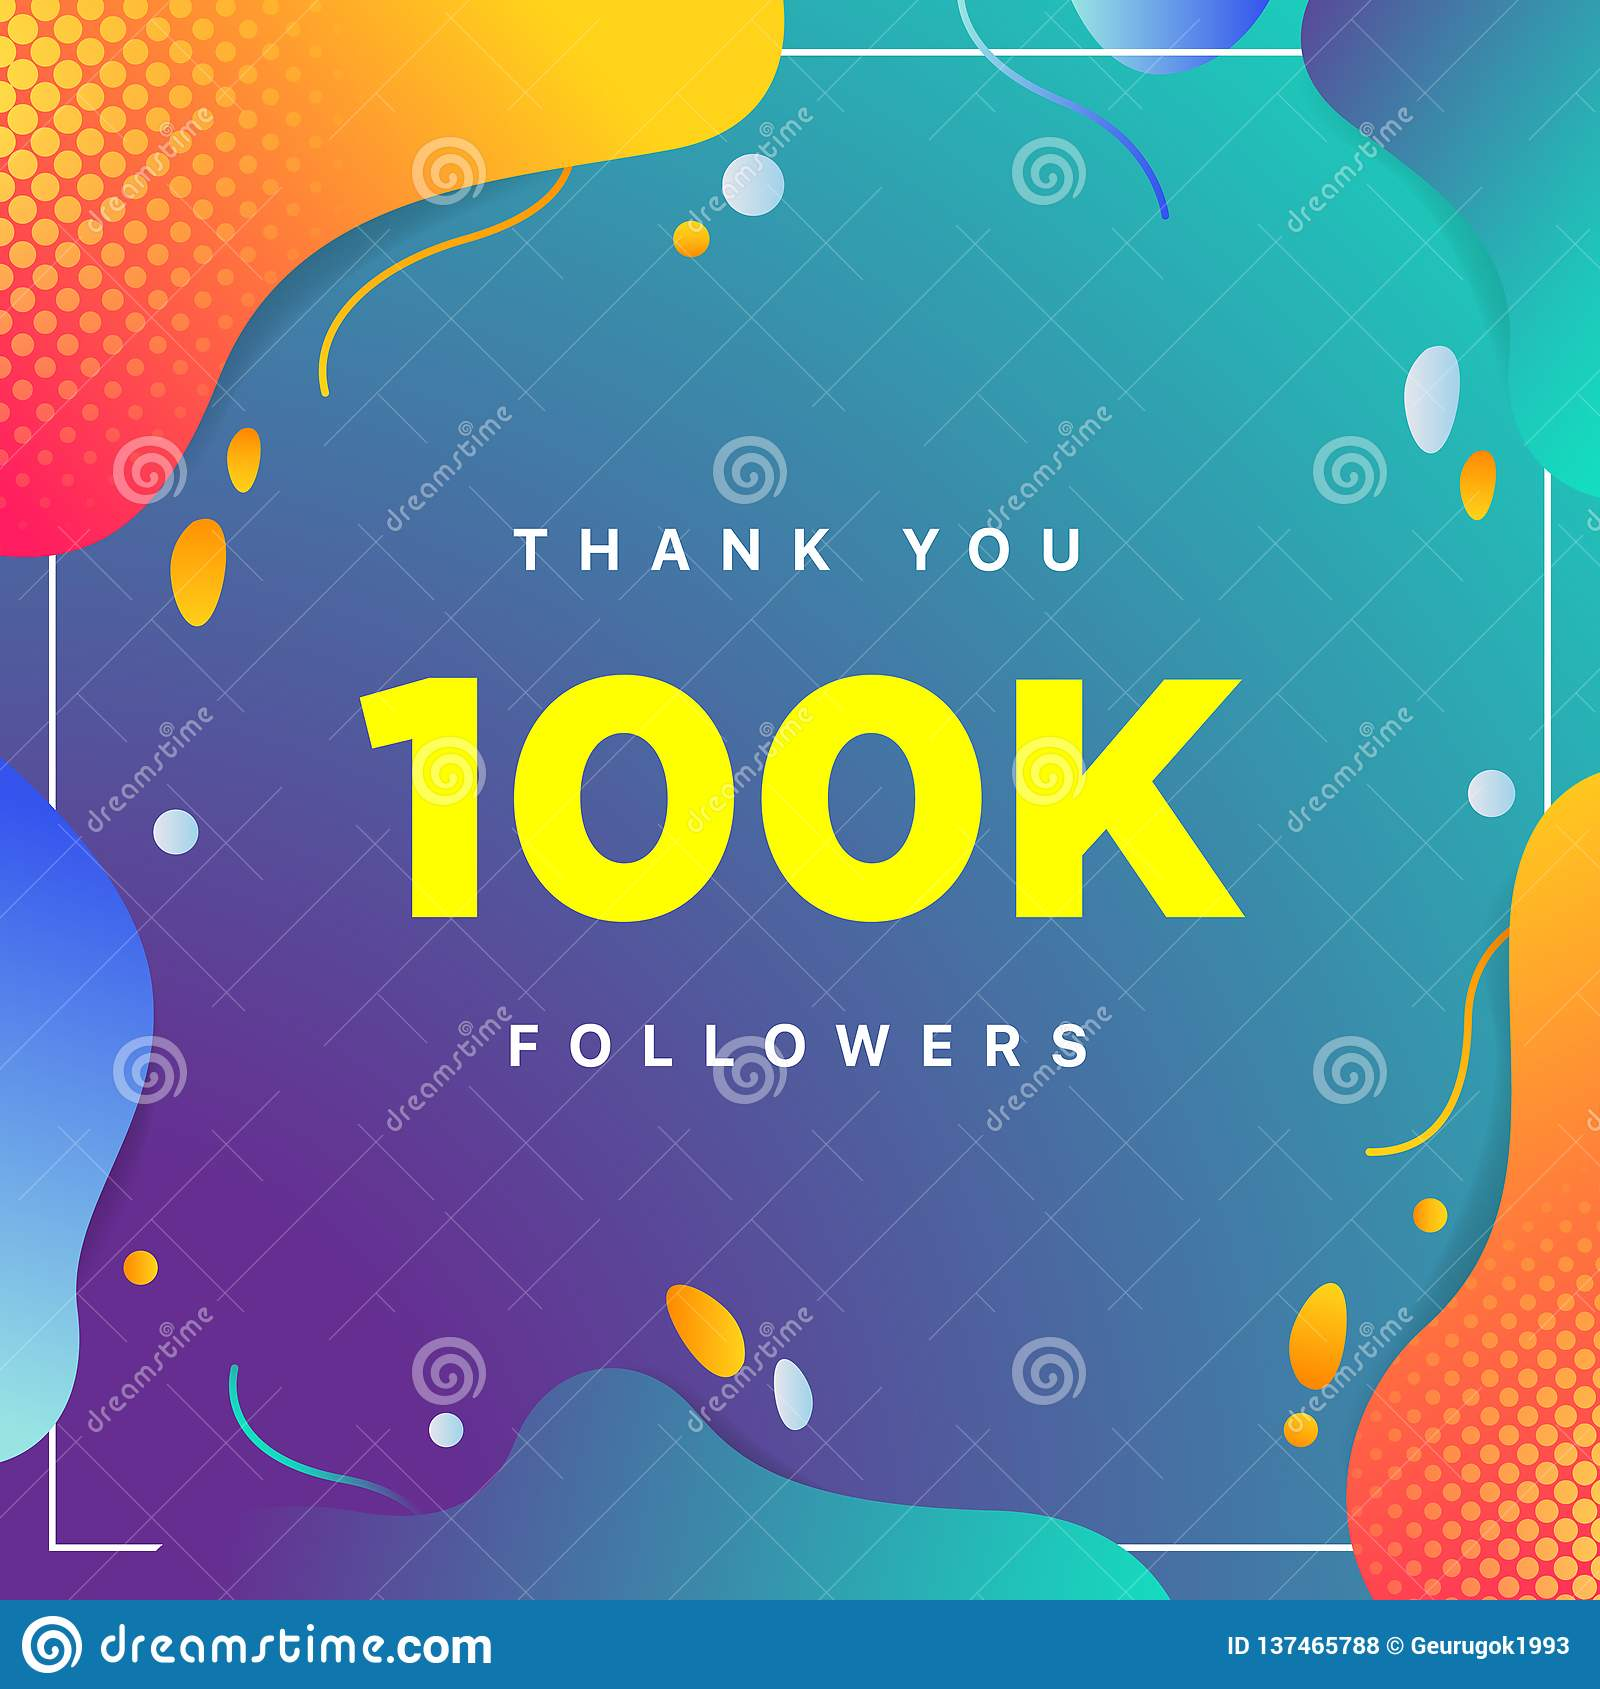 100k or 100000, followers thank you colorful geometric background number. abstract for Social Network friends, followers, Web user